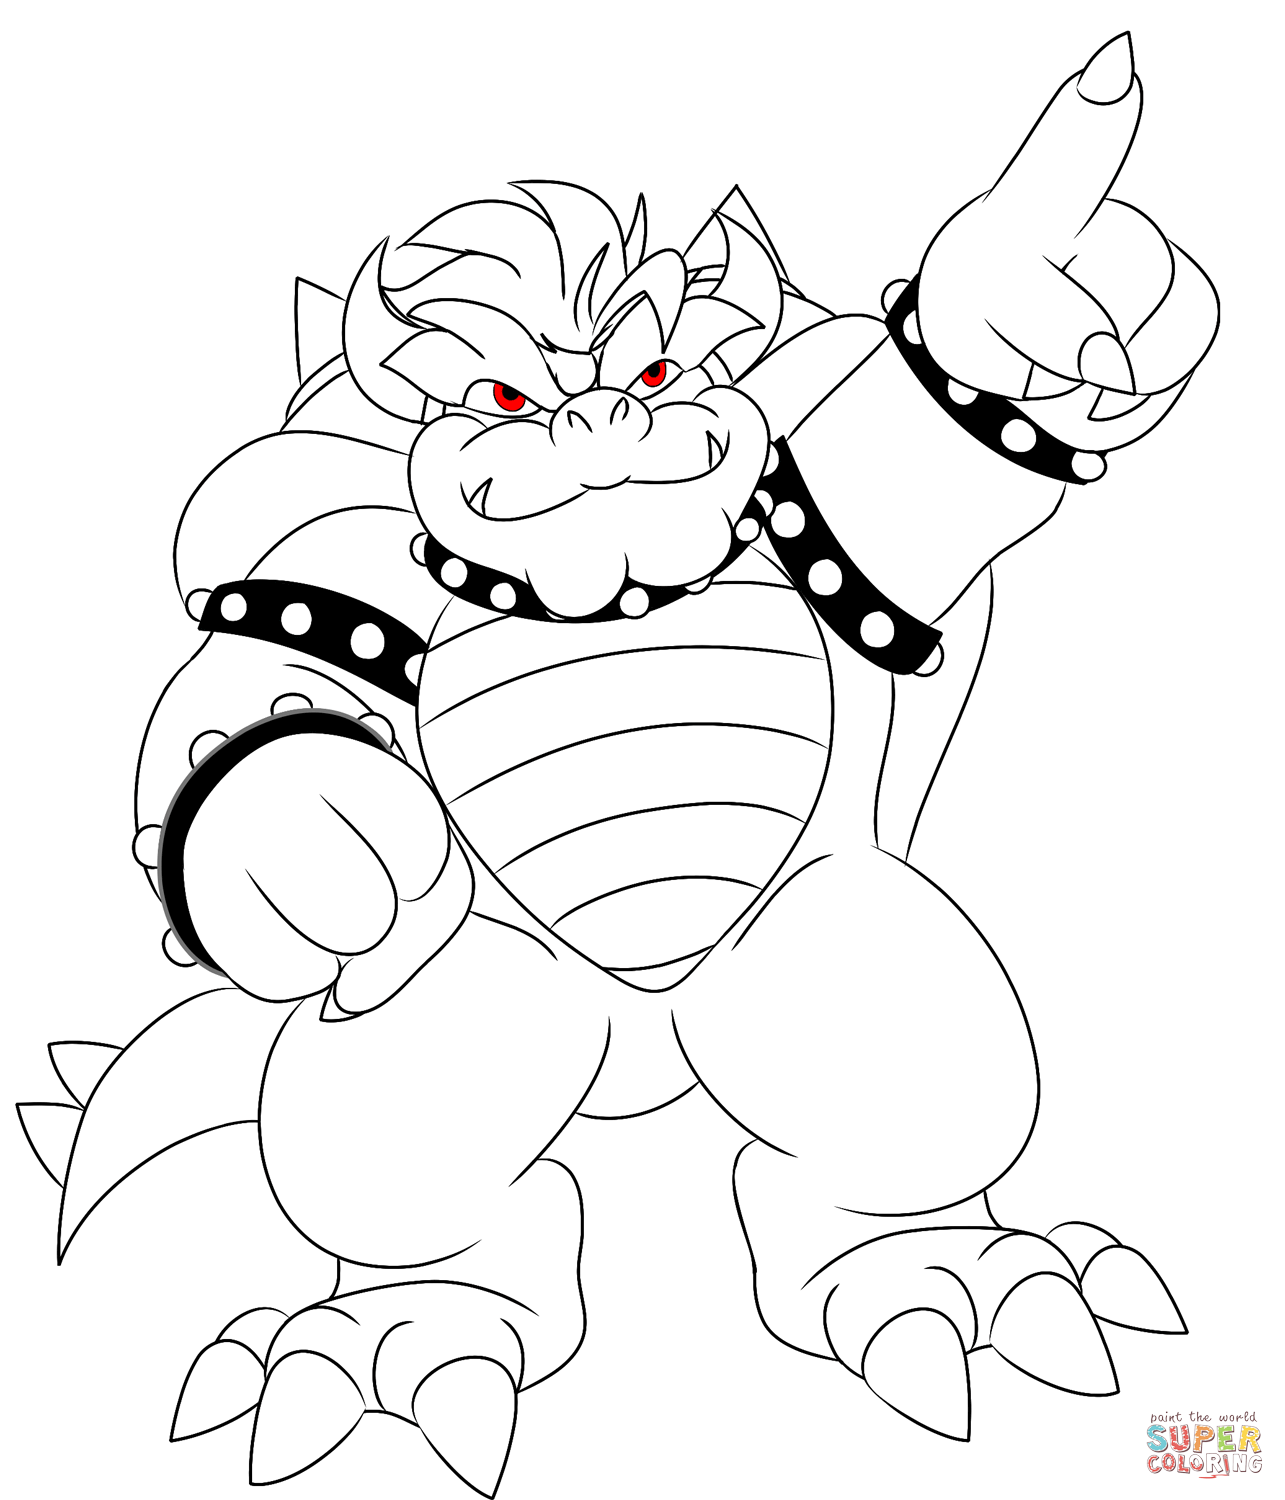 Bowser Pointing Bowser2queen Coloring Page On Bowzer Pages